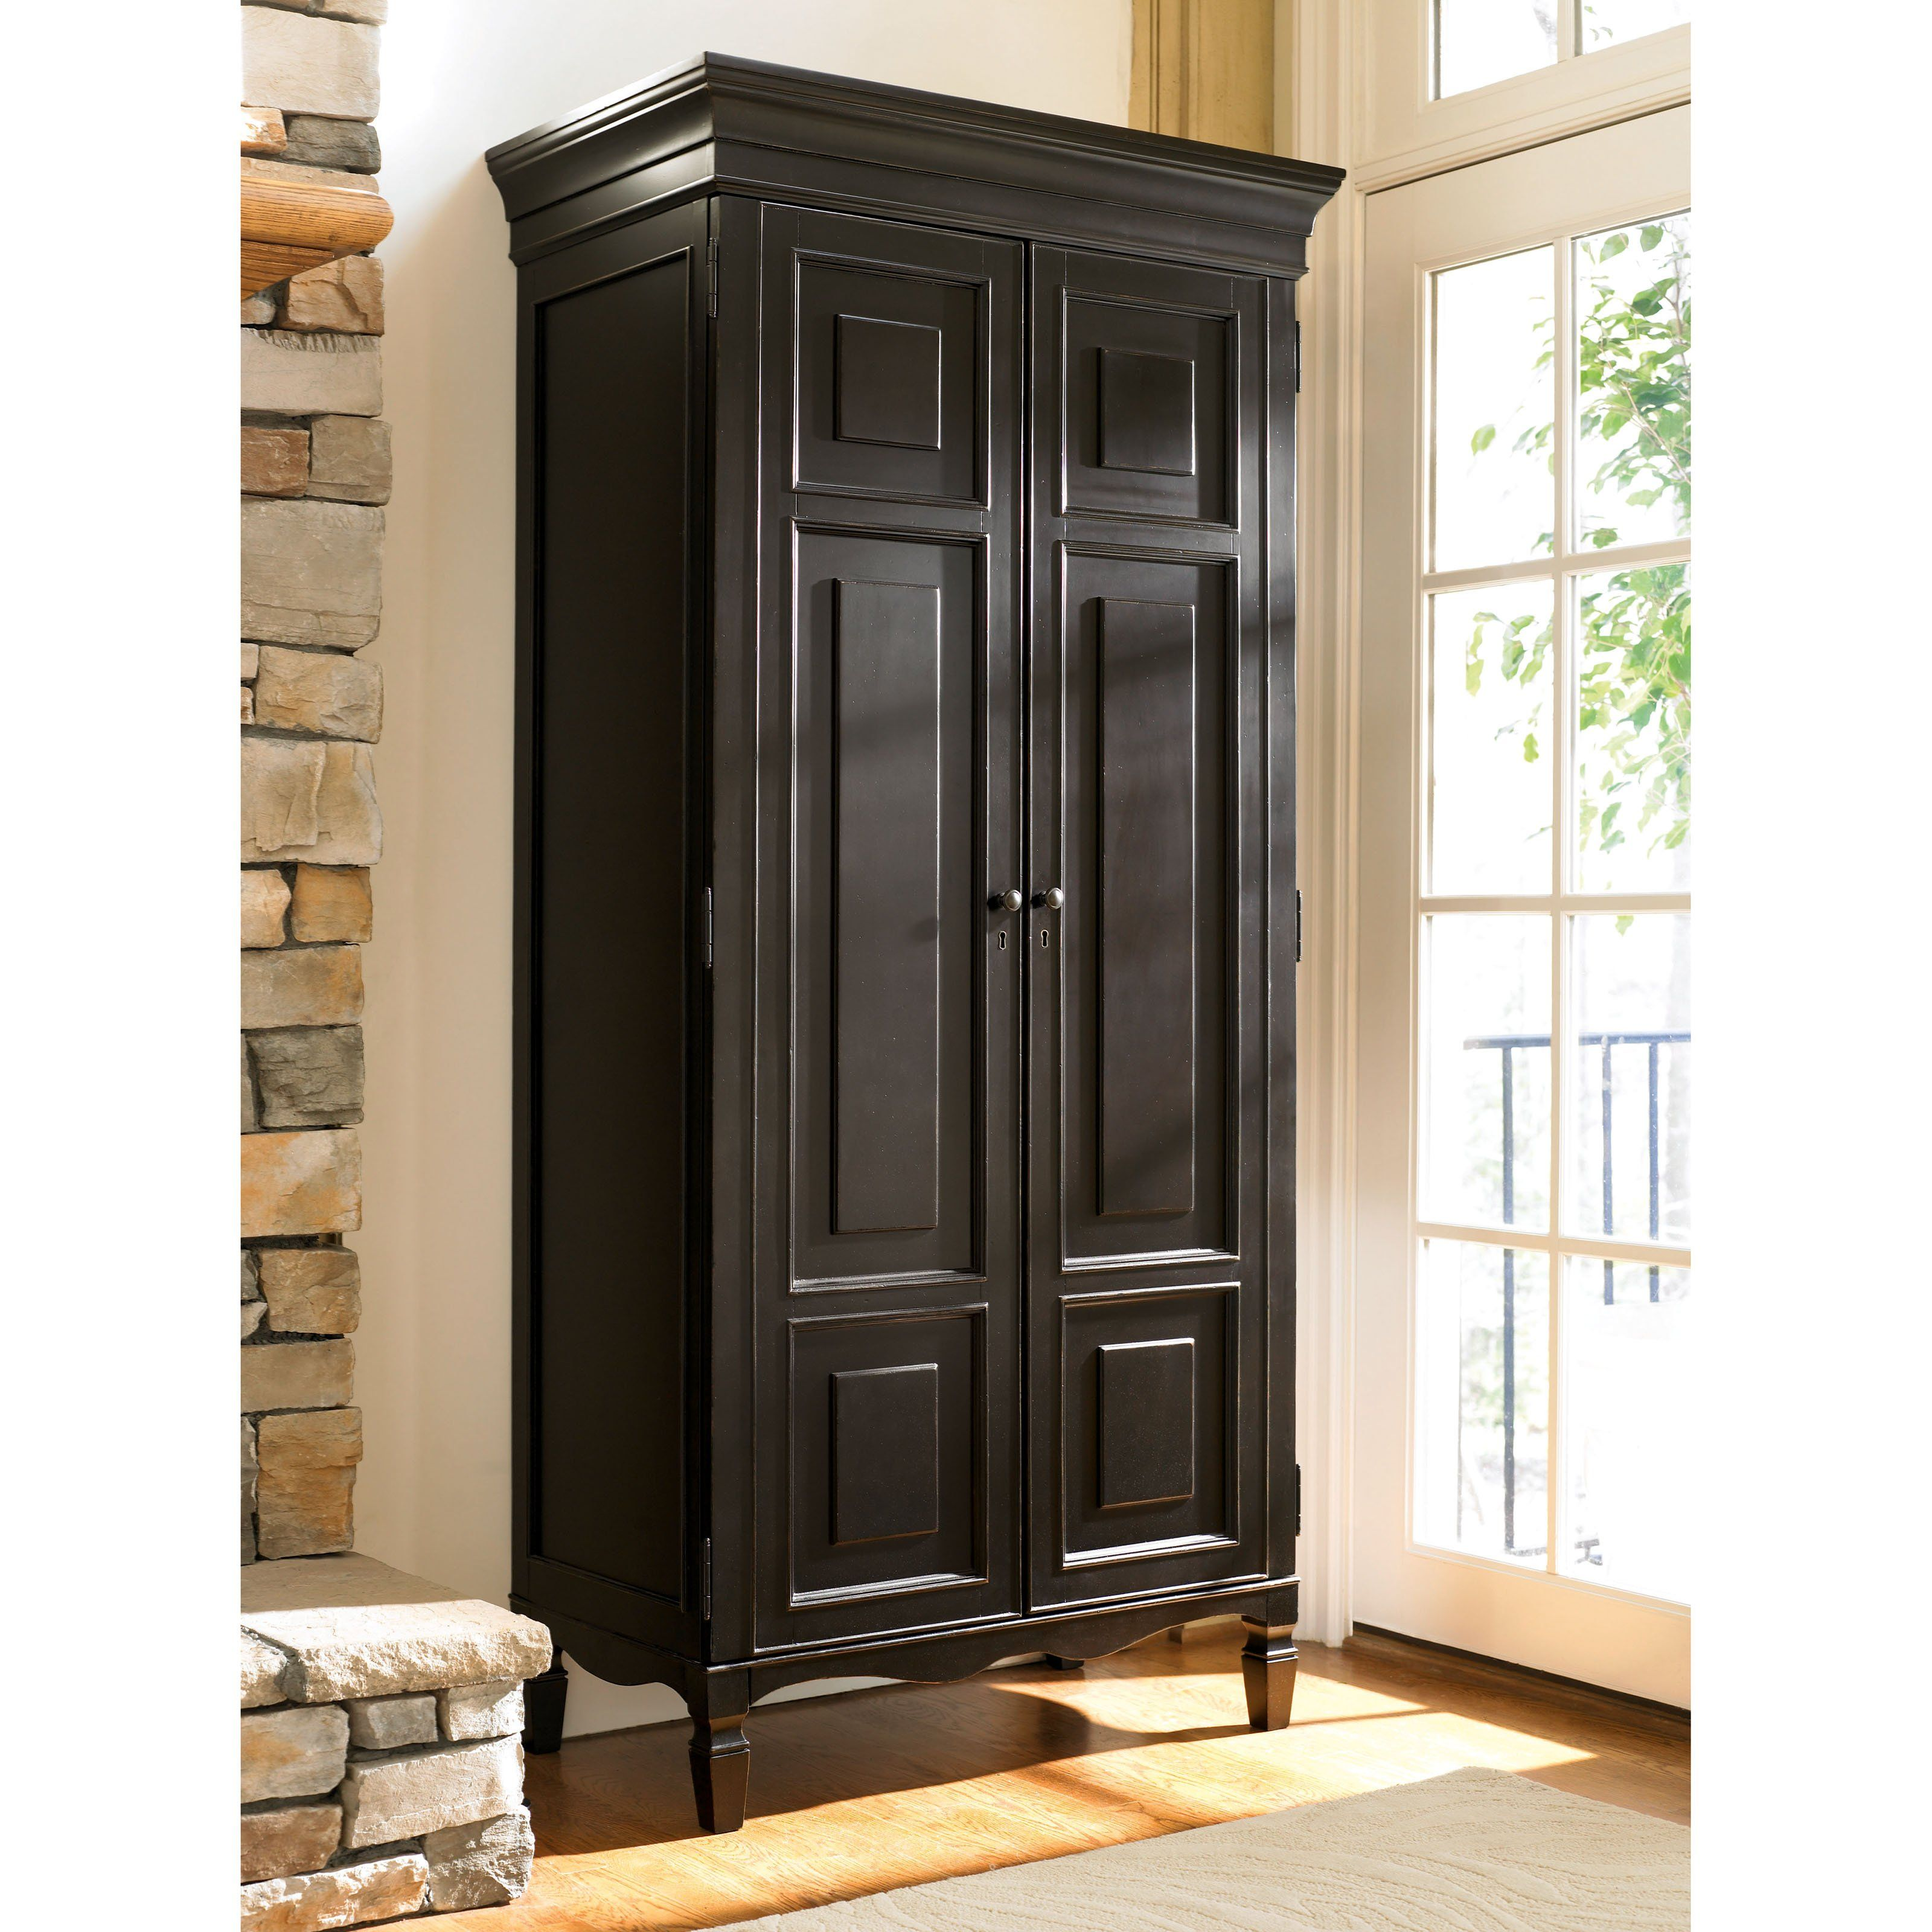 Summer Hill 2 Door Armoire Midnight Www Hayneedle Com Wood Storage Cabinets Tall Cabinet With Doors Wooden Storage Cabinet